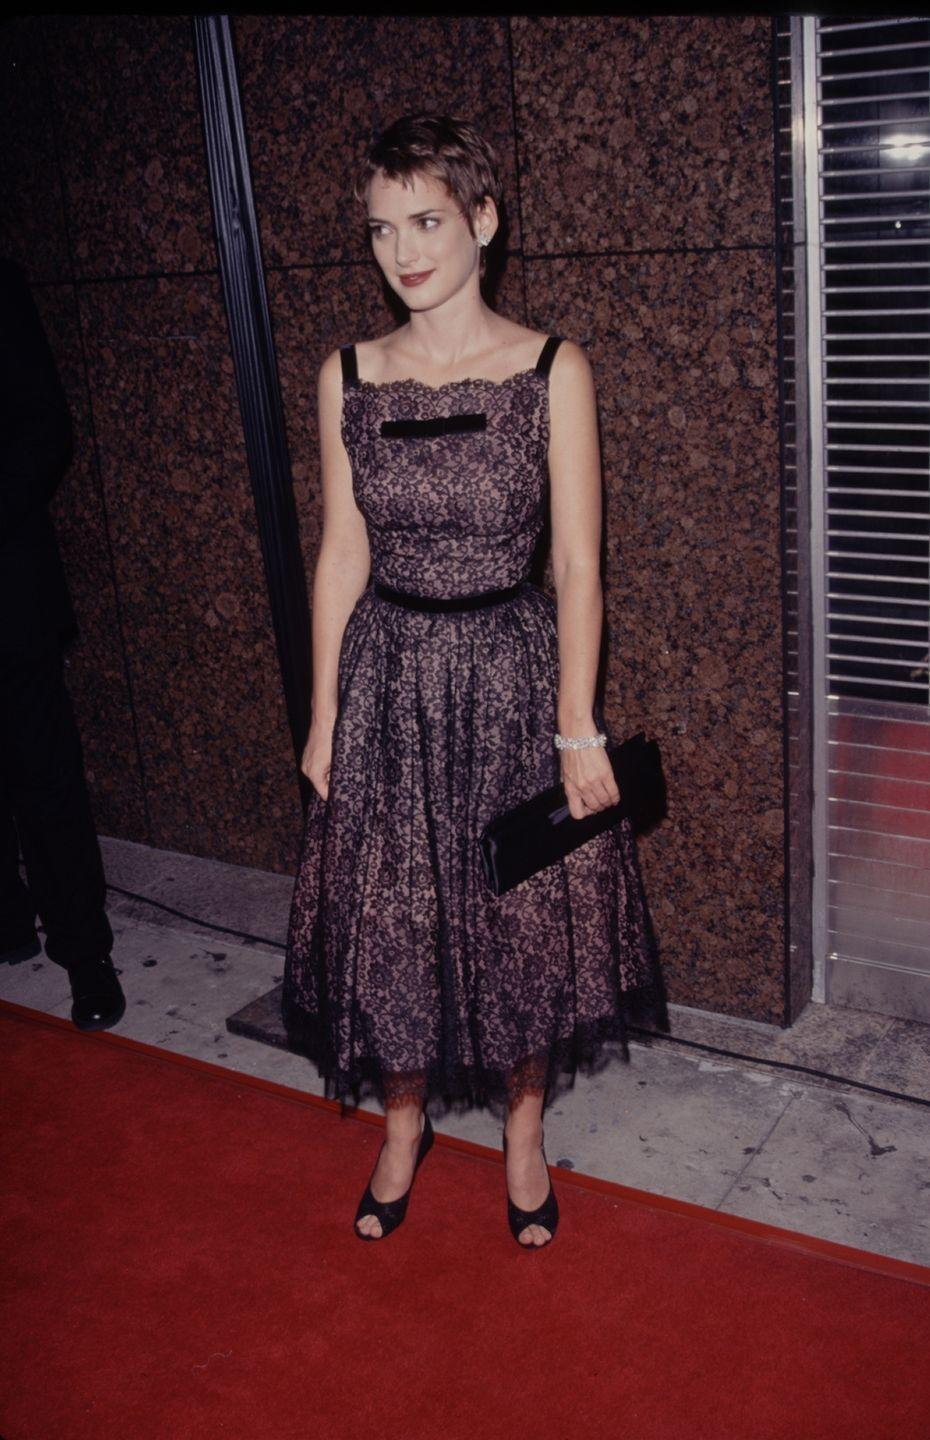 <p>Super elongated clutches were a style that encapsulated the '90s, and you'd often see them, like this black version, on the red carpet at award shows. </p>